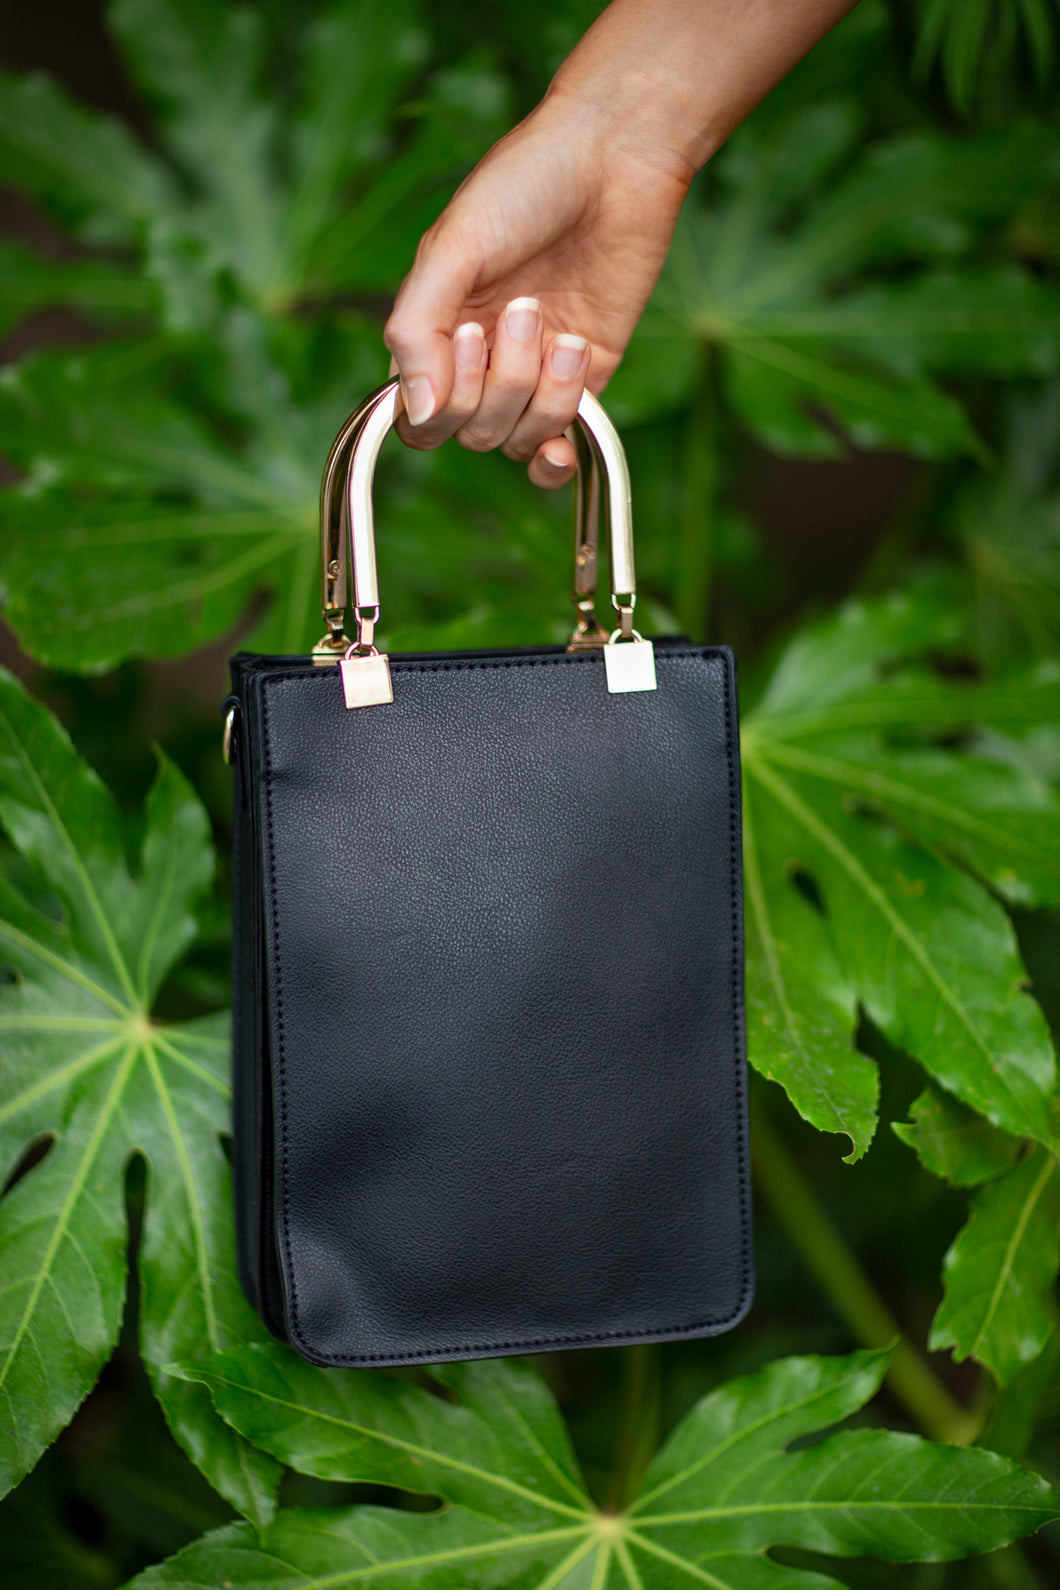 Isabelle bag Black